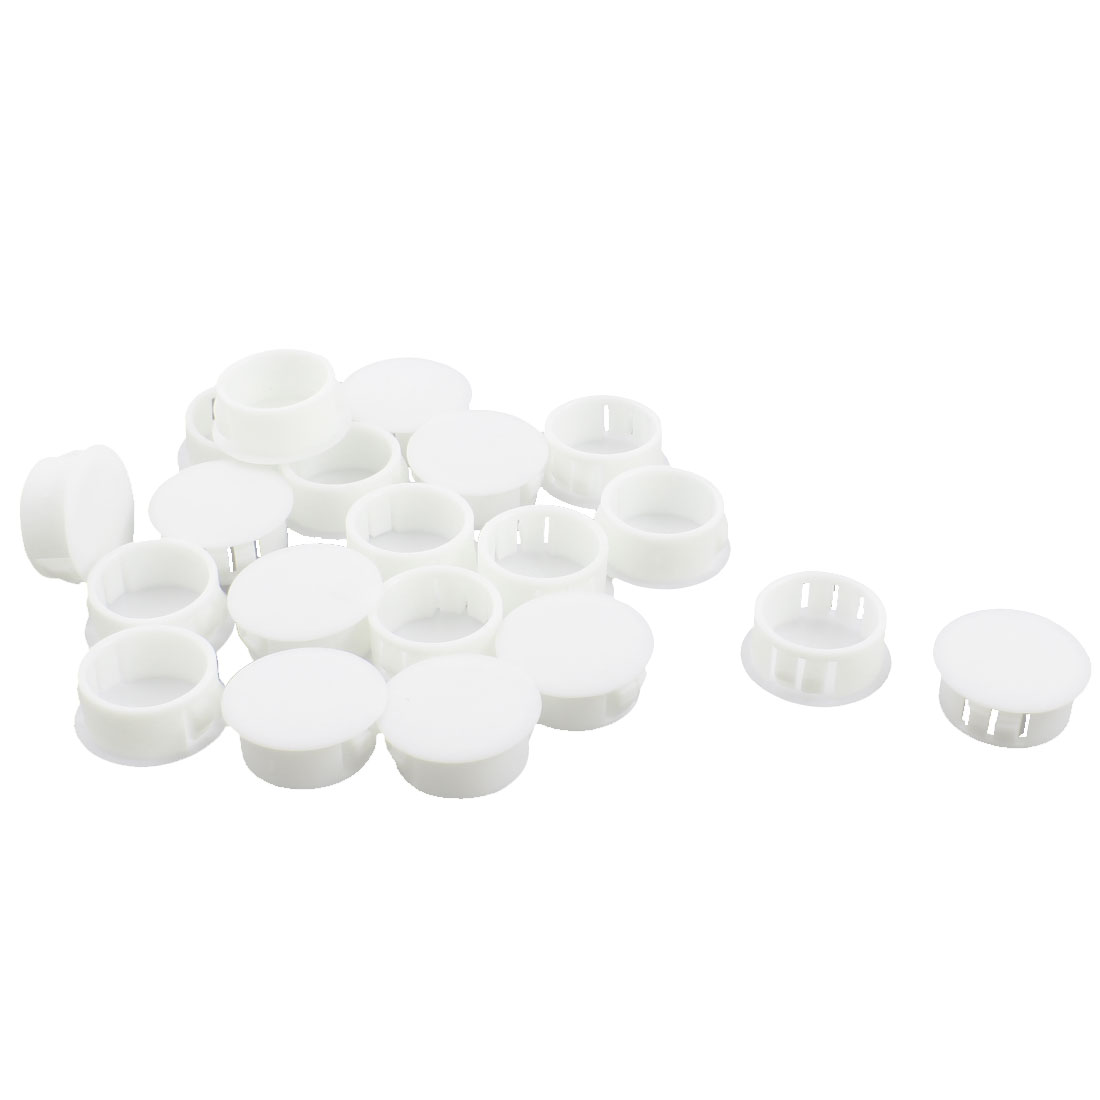 20 Pcs SKT-22 22.1mm Insulated White Plastic Snap in Mount Blank Domed Lock Hole Plug Cover Harness Fastener